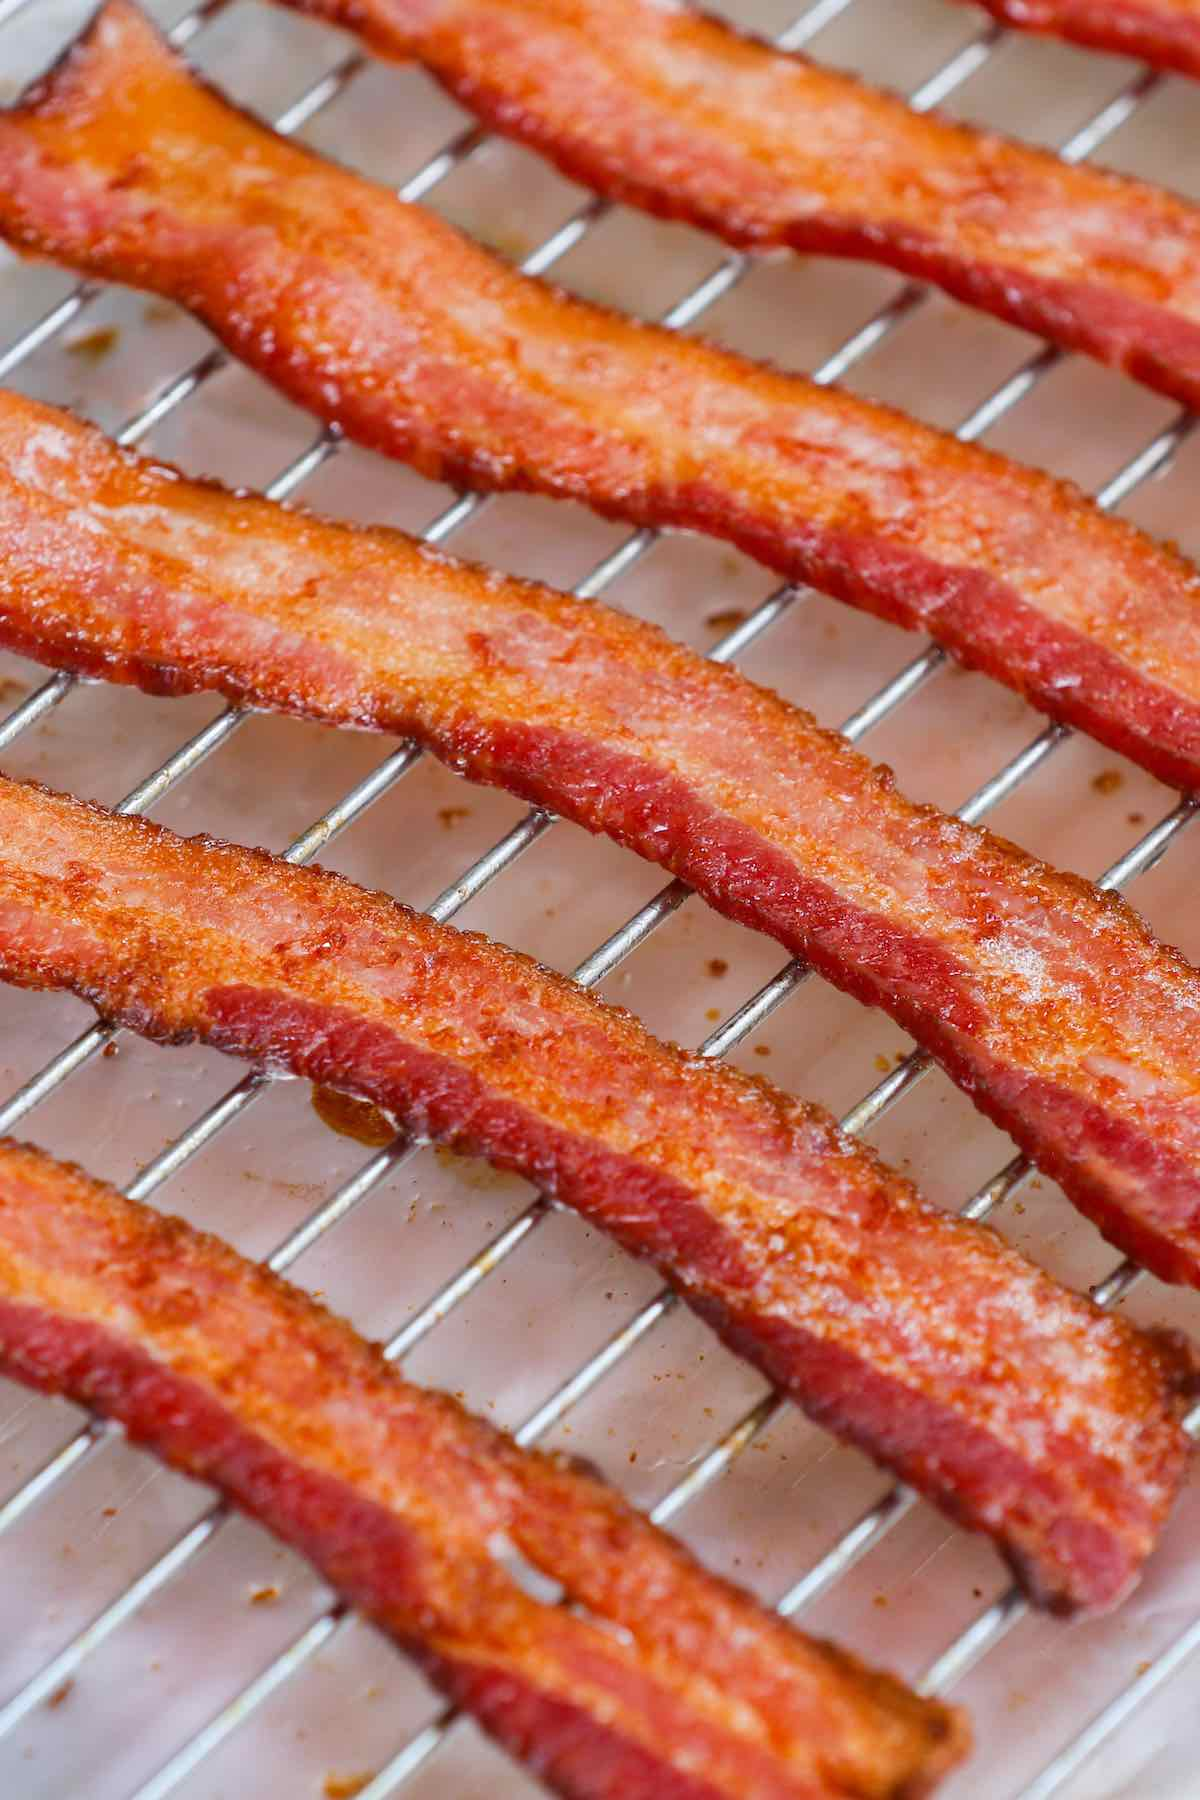 Crispy baked thick-cut bacon on a wire rack.